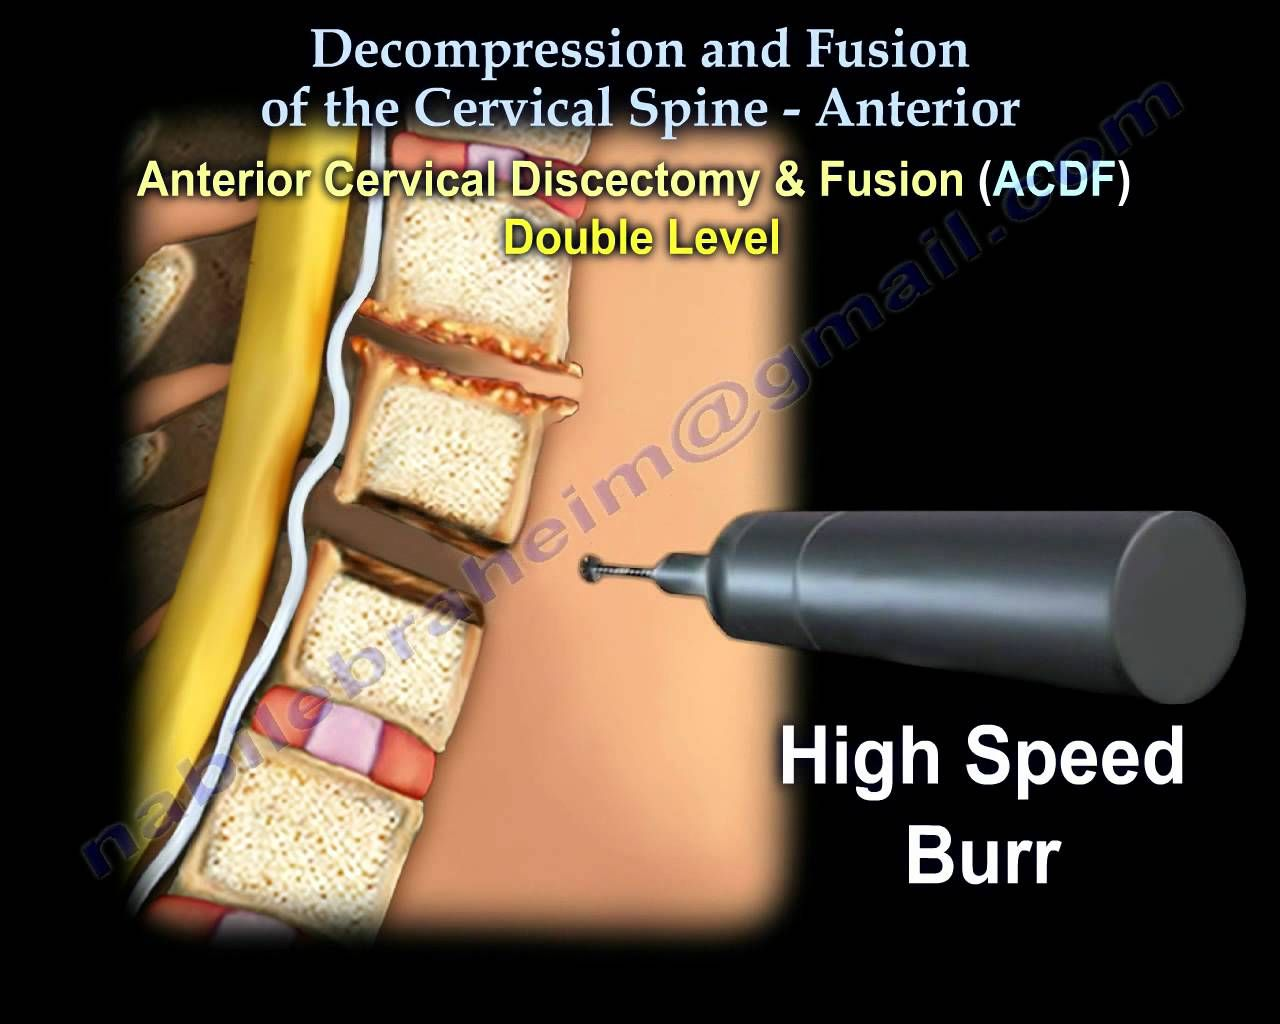 Orange county ca s premier non surgical spinal decompression clinic - Ebraheim S Educational Animated Video Describes The Methods Of Decompression And Fusion Of The Anterior Cervical Spine